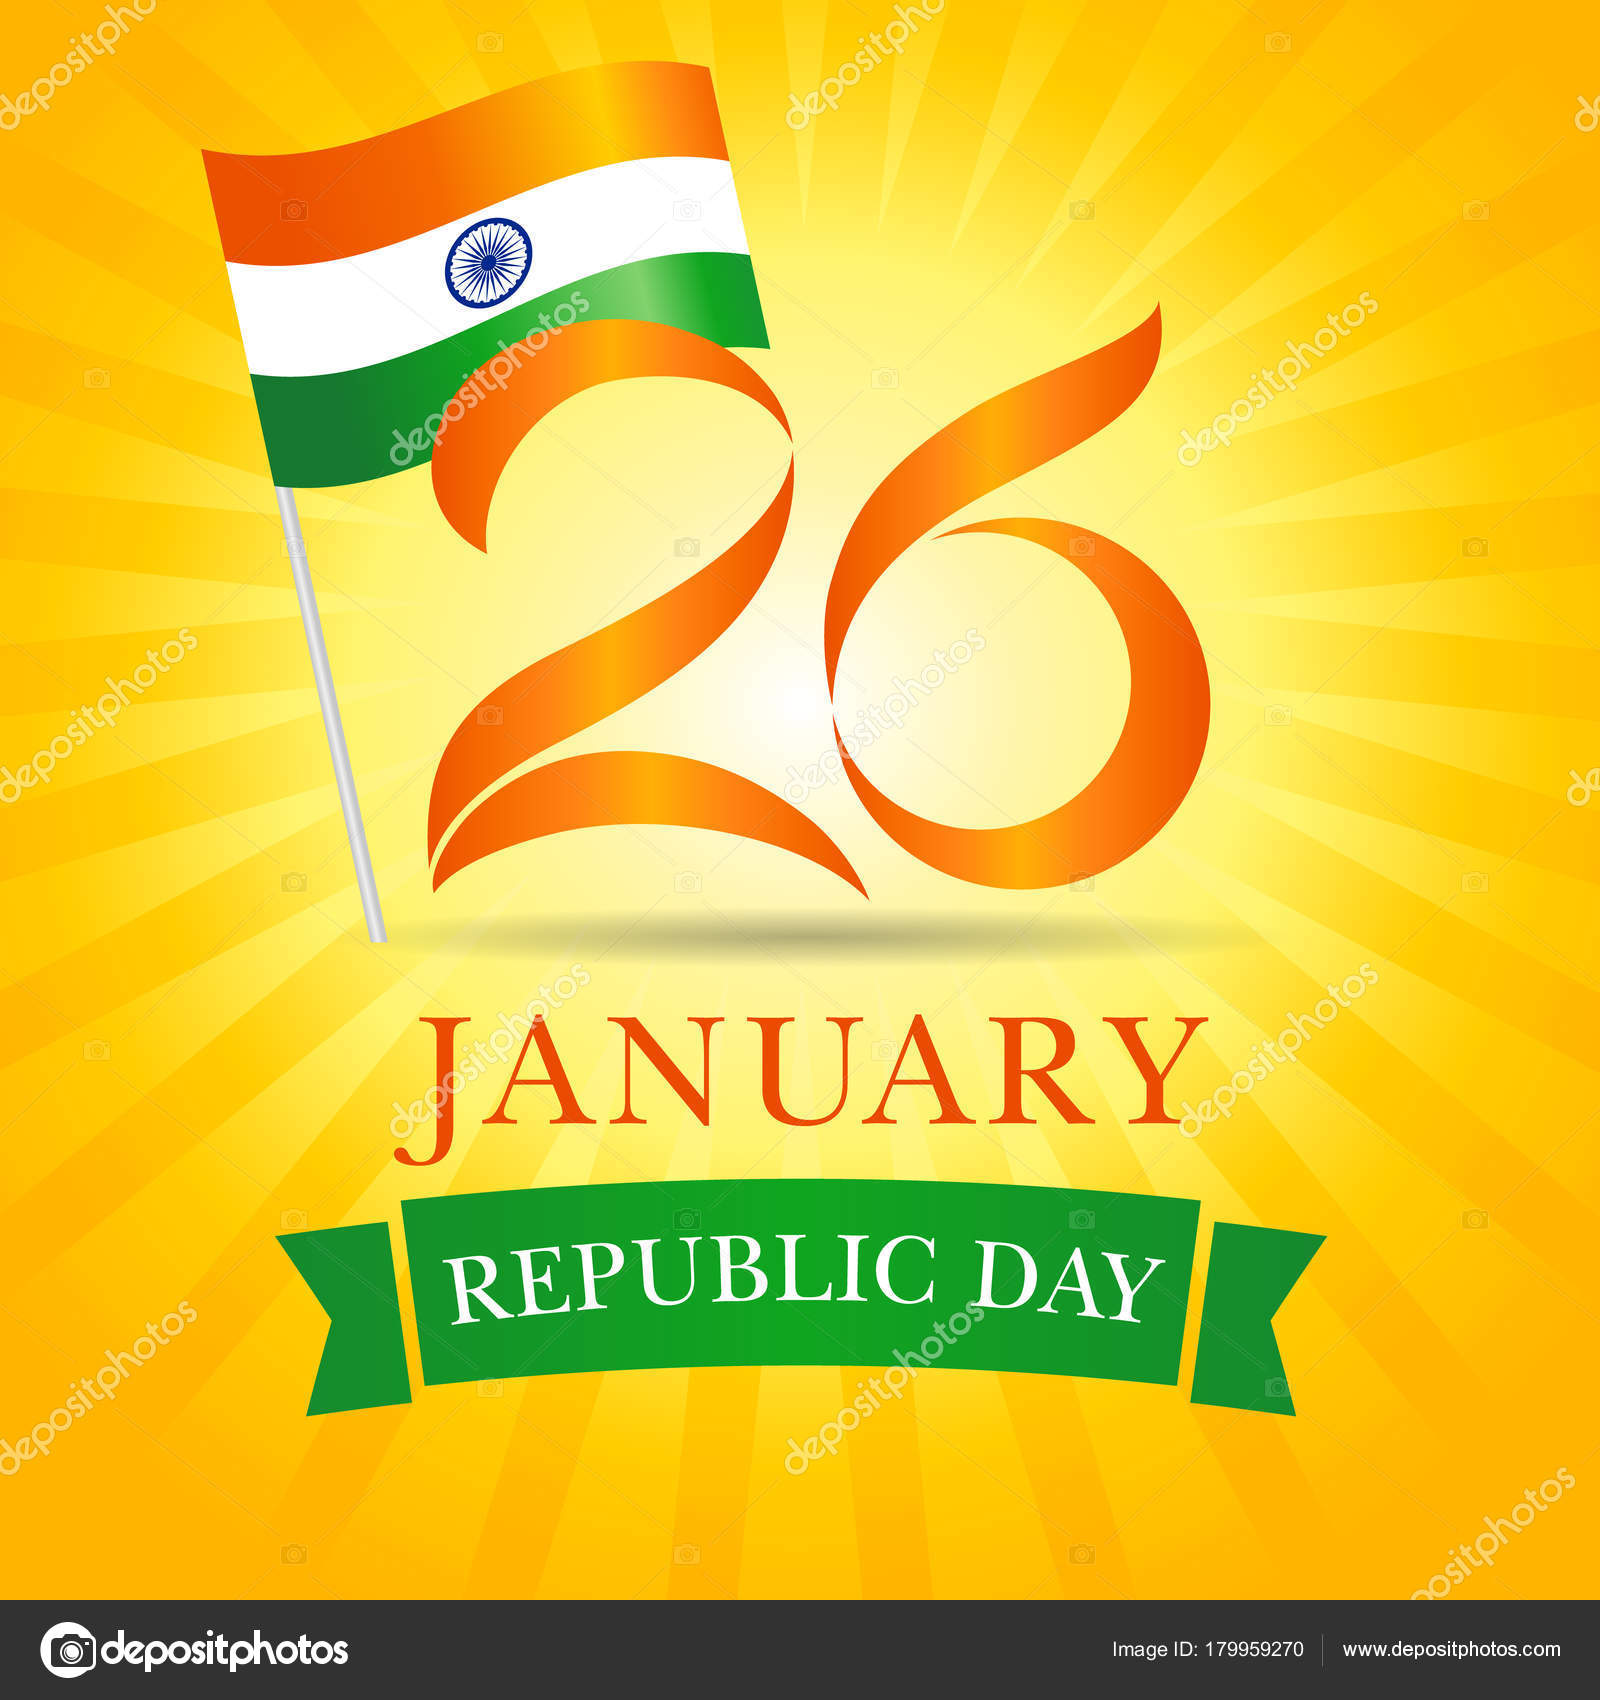 January happy republic day idia greeting card vector illustration 26 january happy republic day idia greeting card vector illustration for 26th january republic day idia lettering banner with national flag and text on m4hsunfo